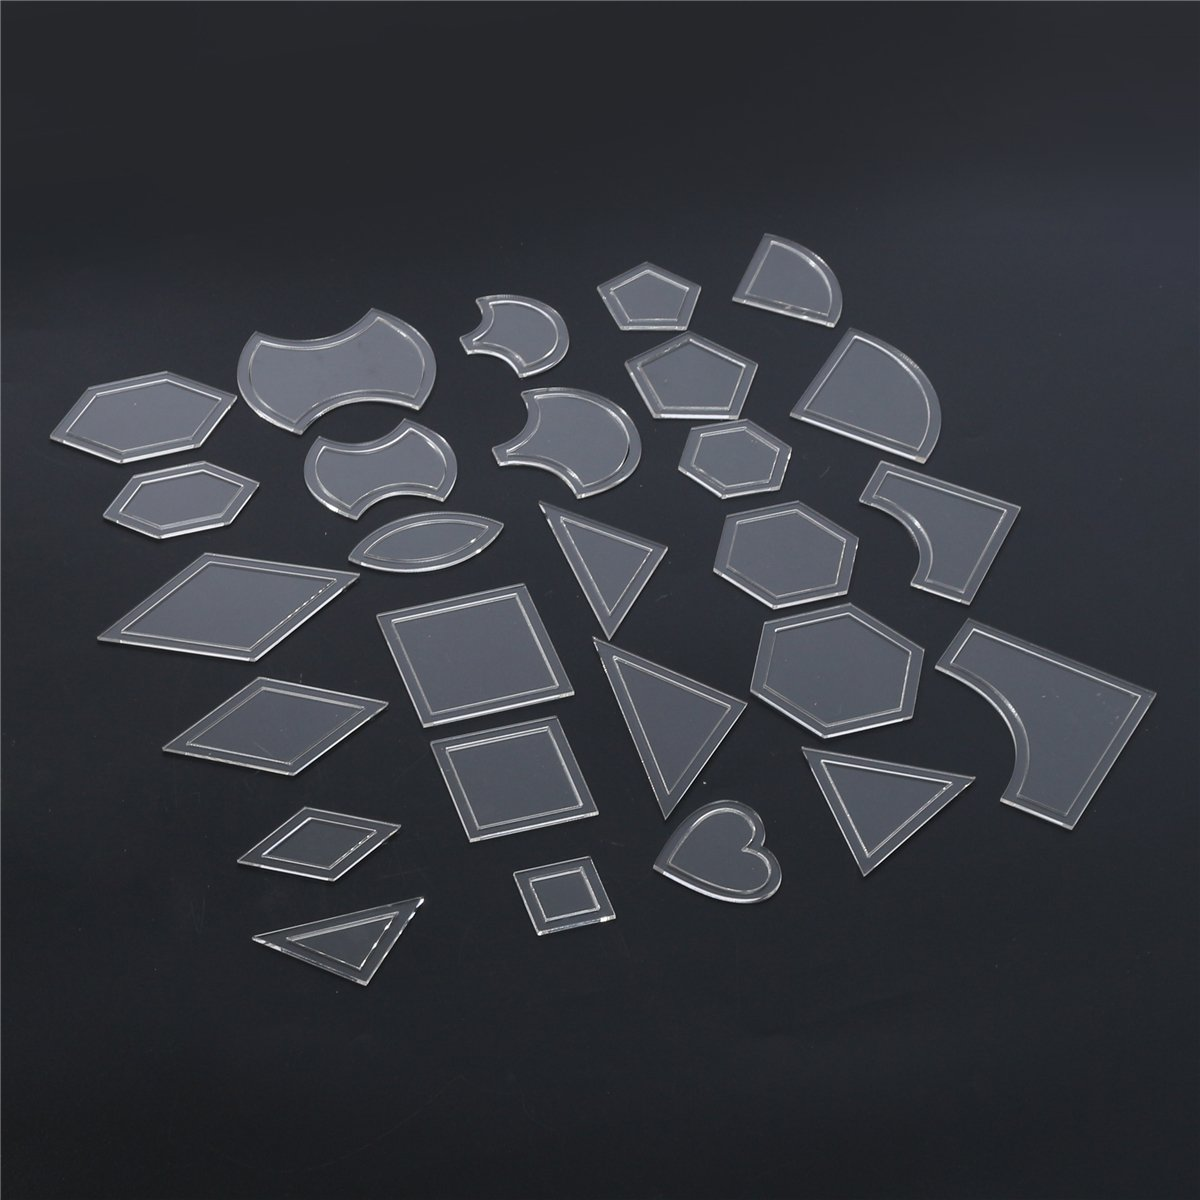 Delaman Quilting Supplies Plastic Stencil Quilting Template DIY Patch Work Sewing Crafts Tool